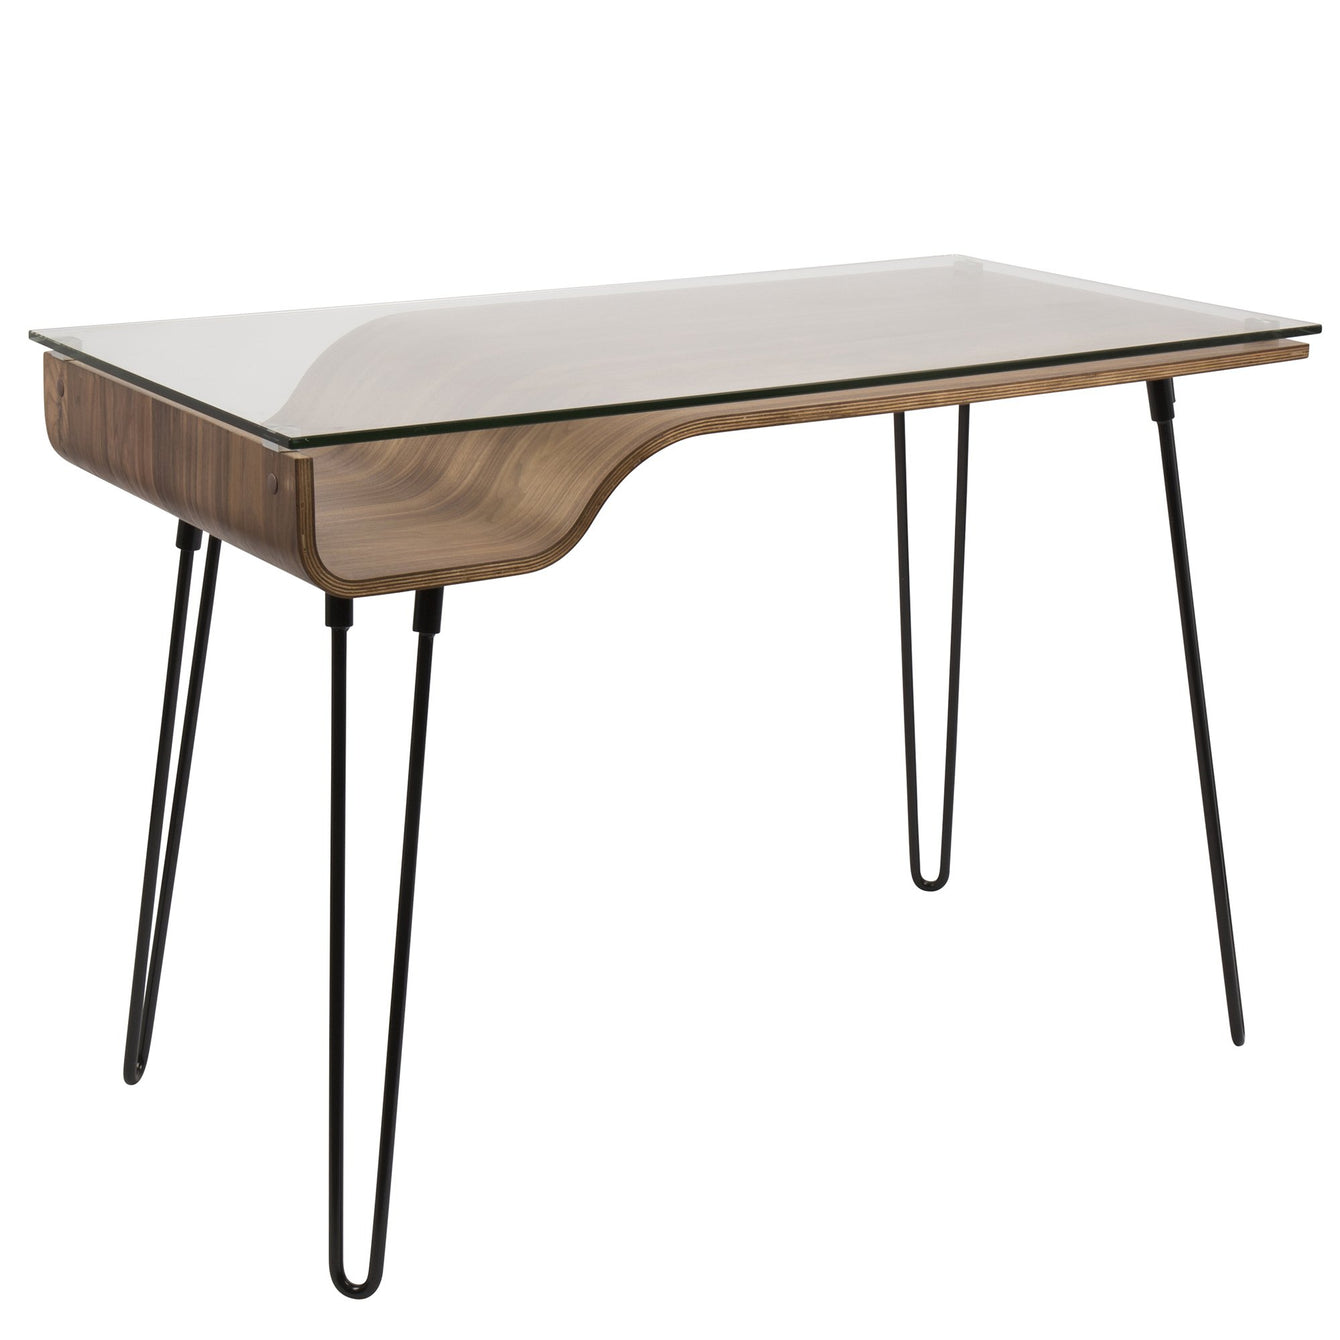 Avery Mid-Century Modern Desk in Walnut Wood, Clear Glass, and Black Metal-LUMISOURCE-Peccadilly